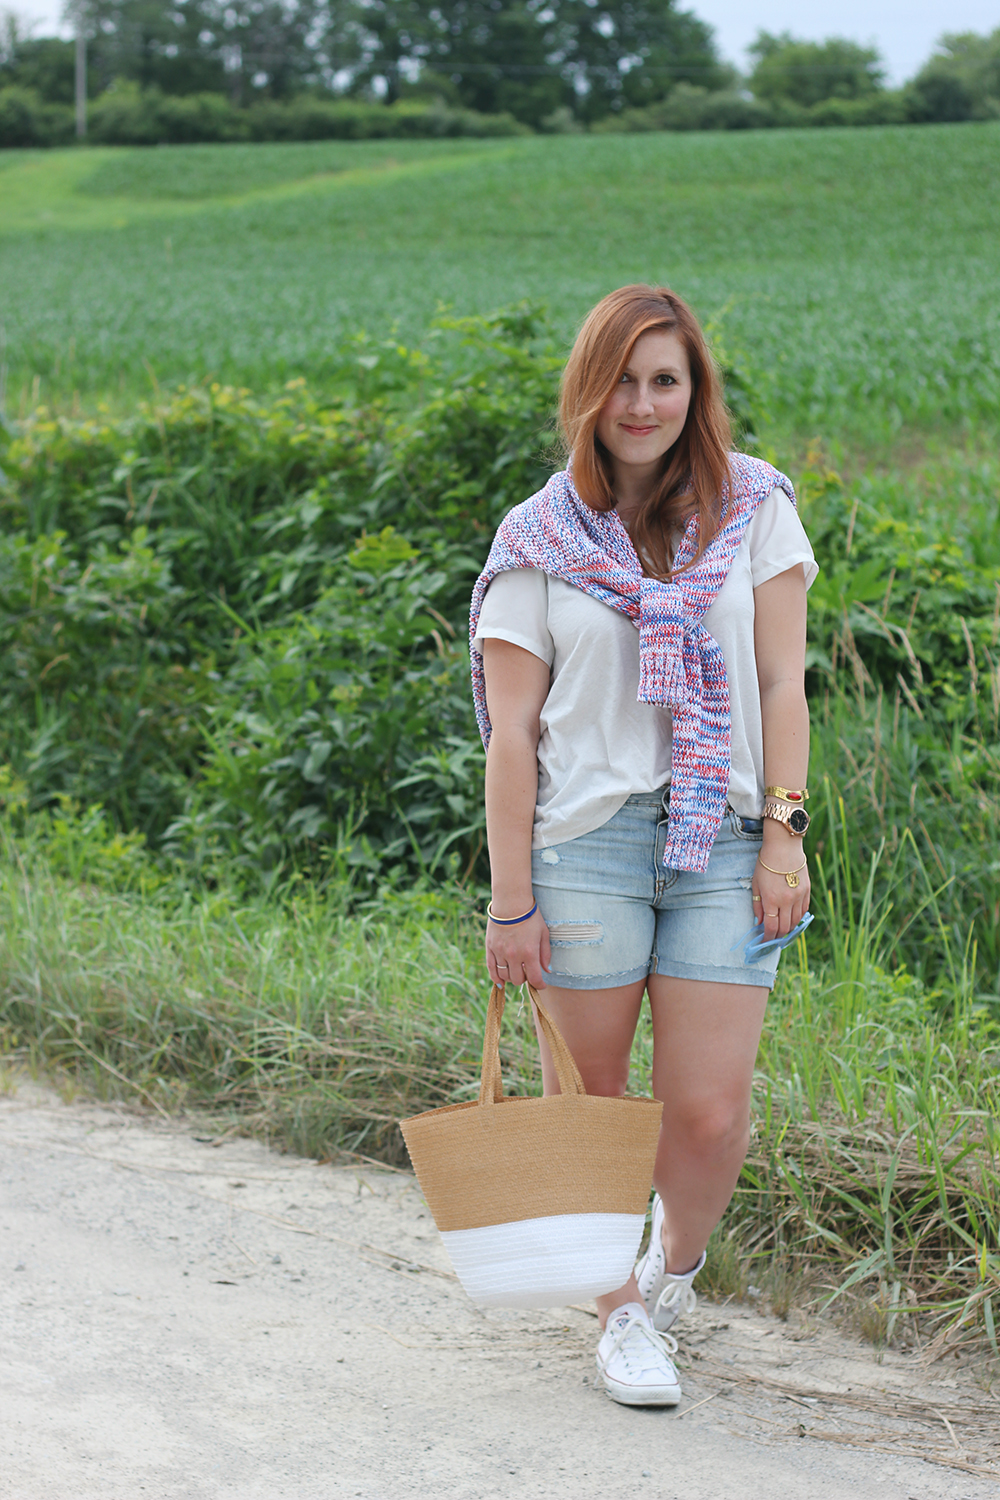 fourth-of-july-sweater-jean-shorts-white-tee-5